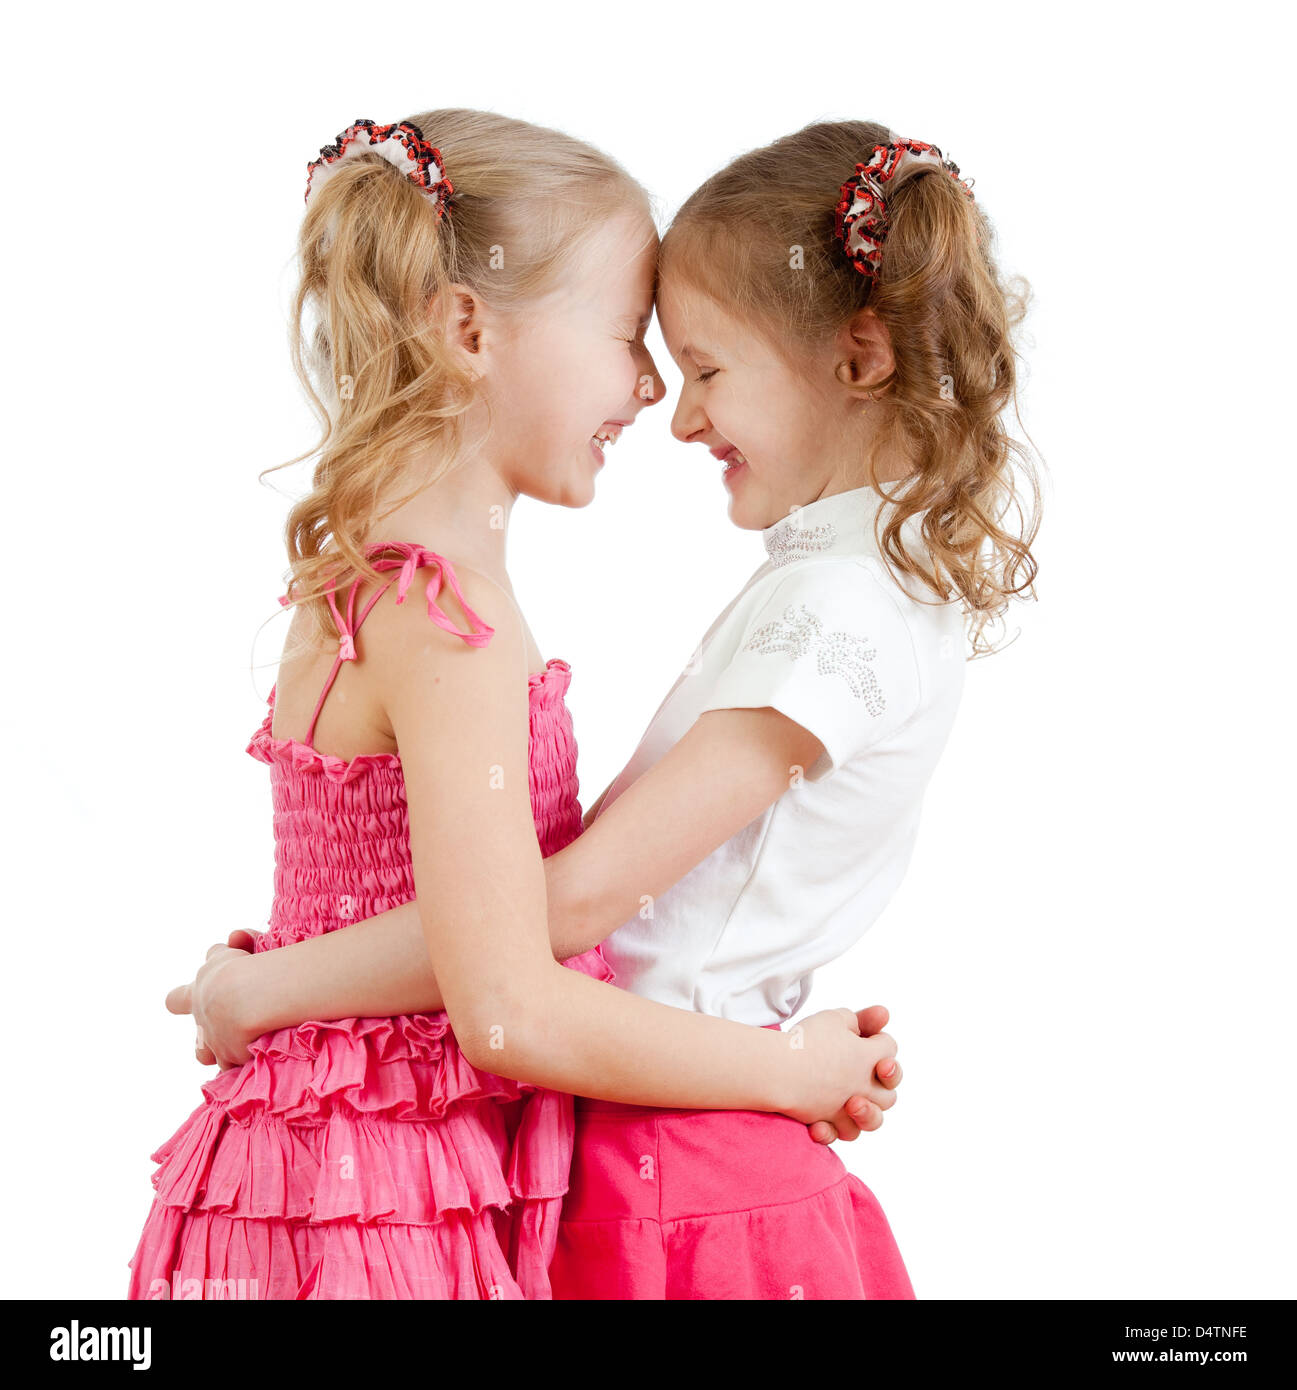 Smiling and hugging cute girls, best friends. - Stock Image